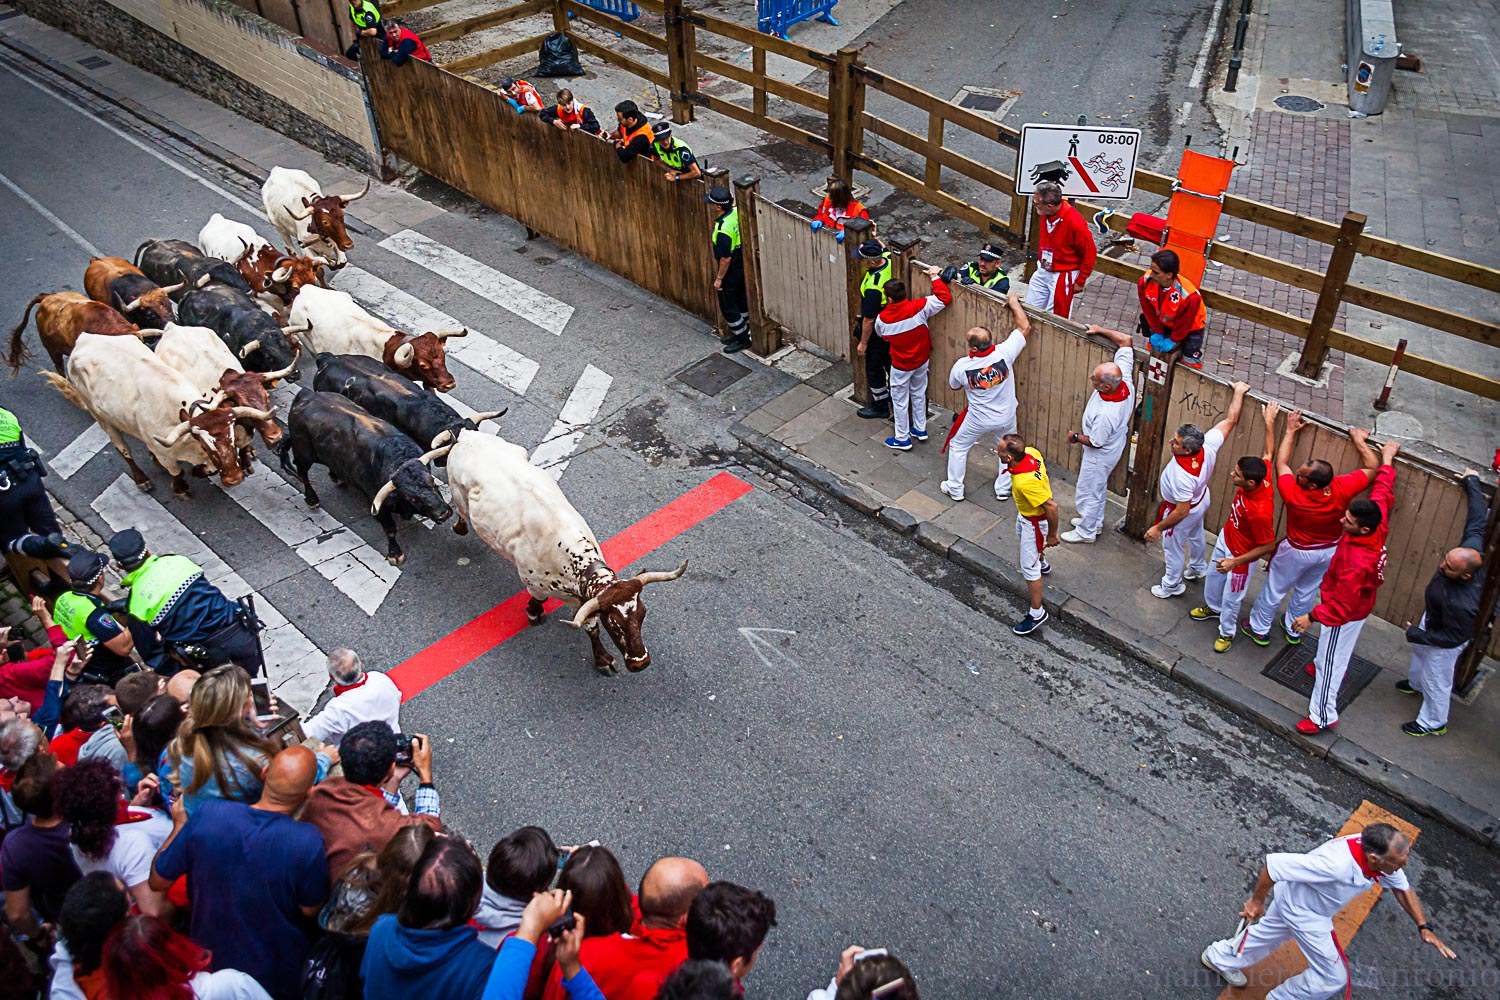 Pamplona (15 of 20).jpg